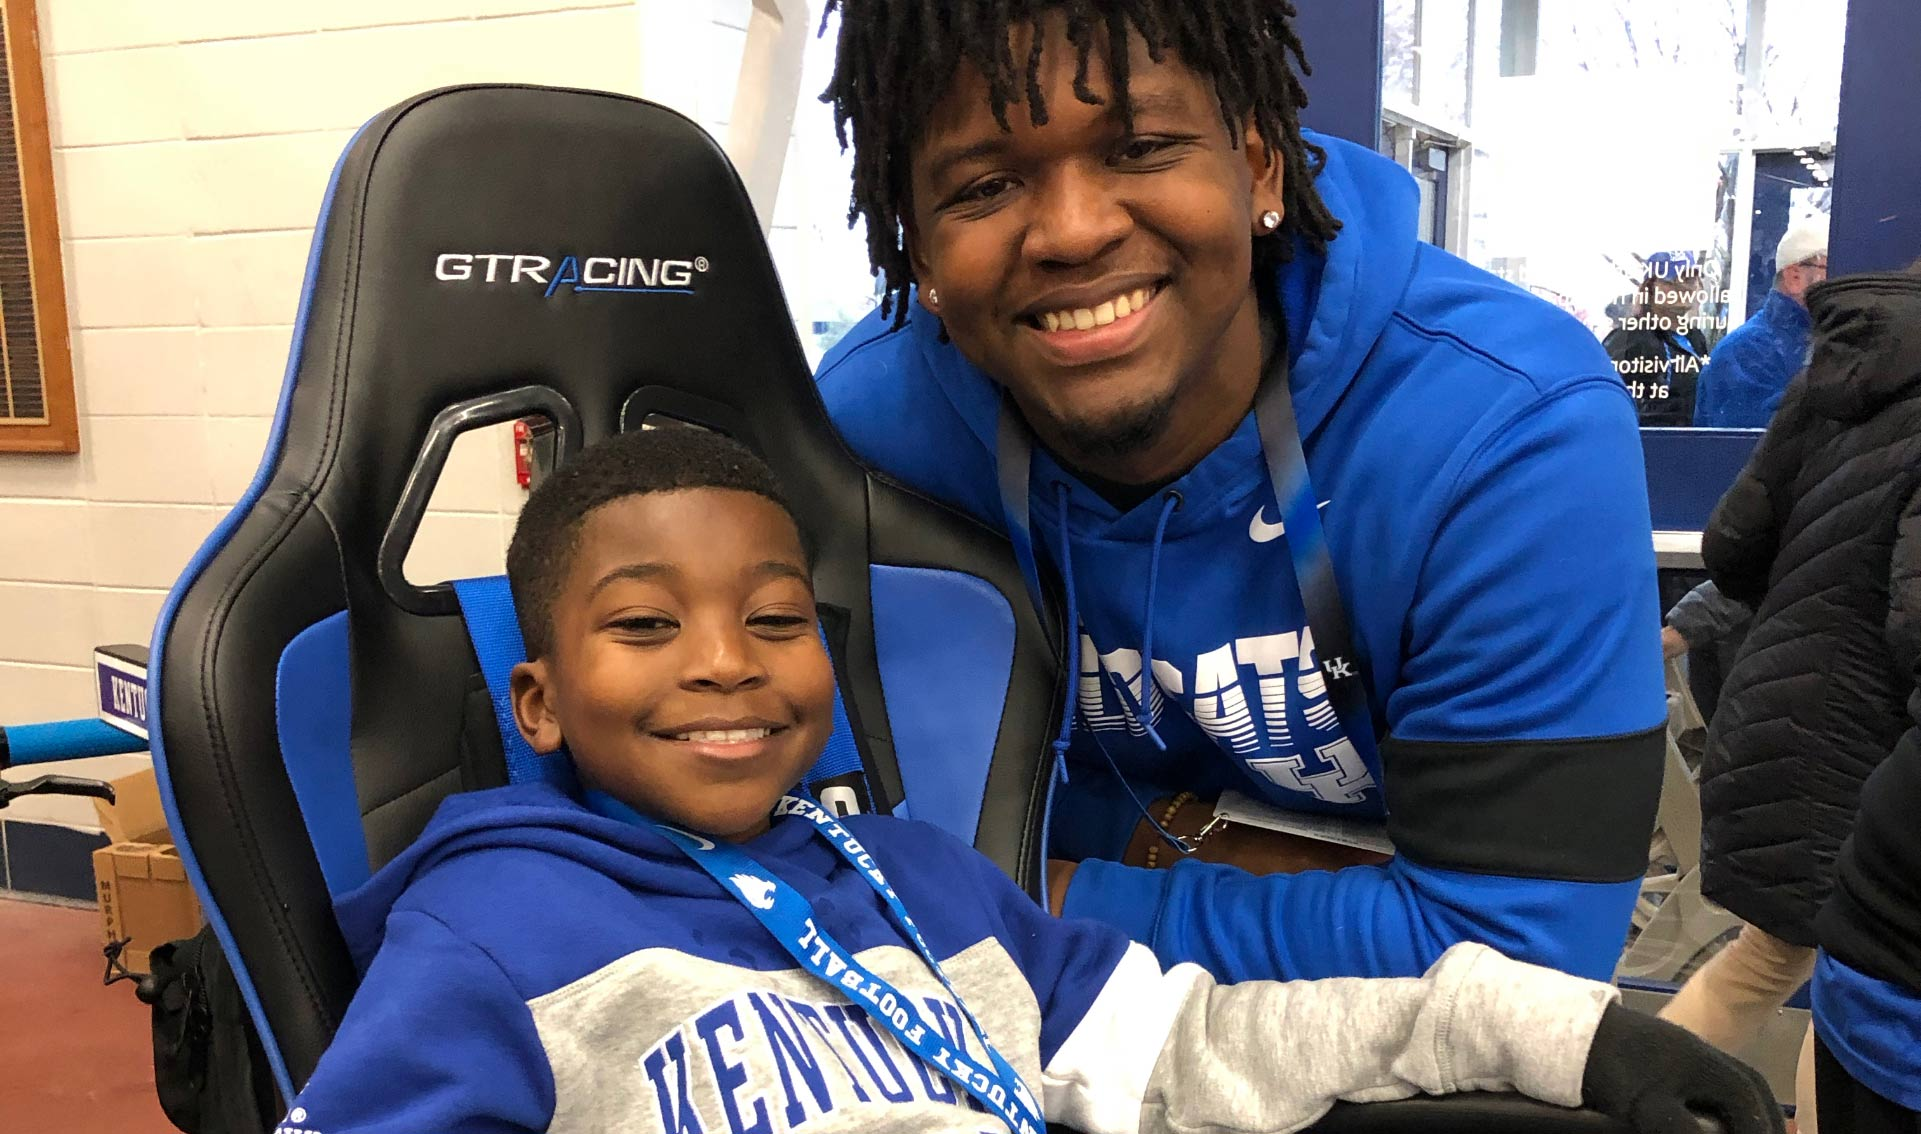 DJ Johnson, a young Black man in a Kentucky sweatshirt, poses for a close-up photo in the cart. A Black man on the UK football staff poses with him. Both are smiling.